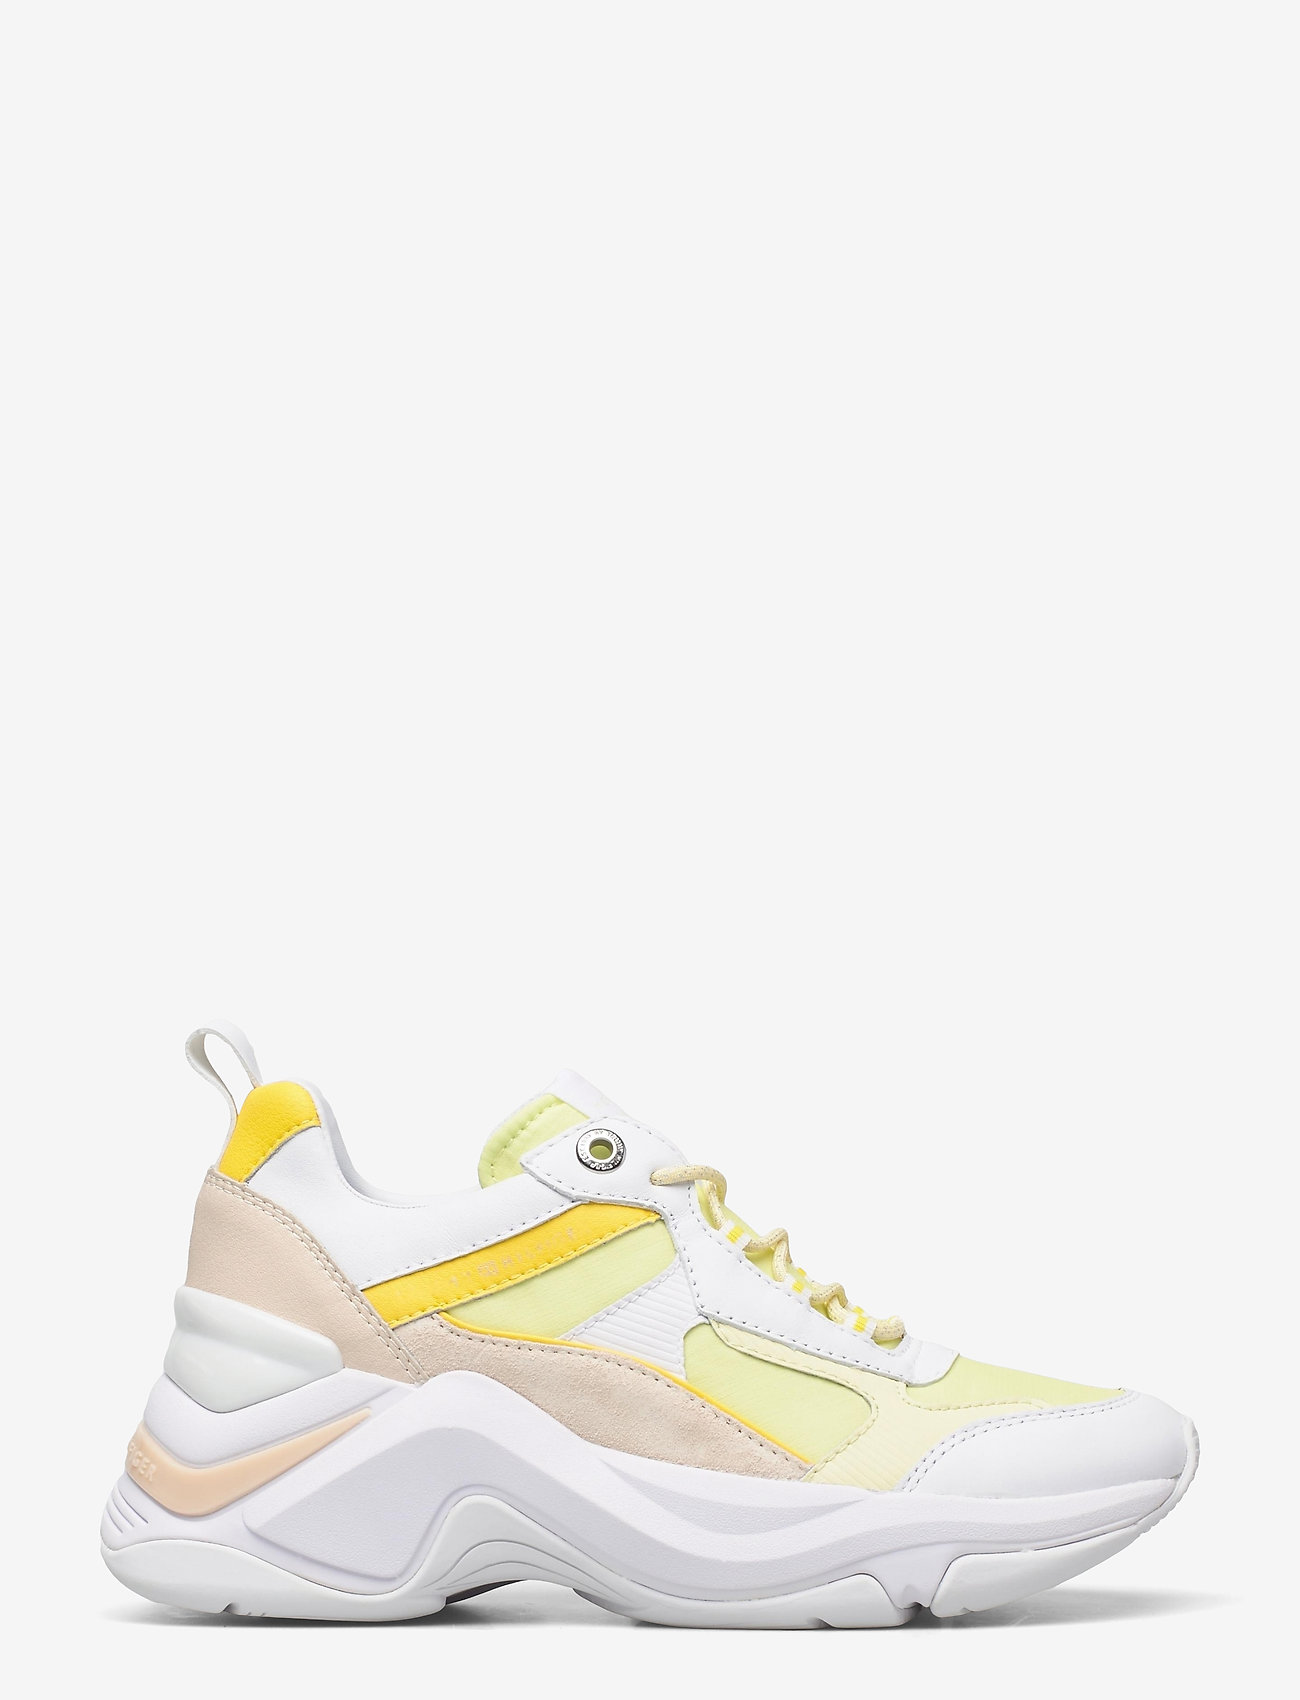 Tommy Hilfiger - FASHION WEDGE SNEAKER - chunky sneakers - frosted lemon - 1